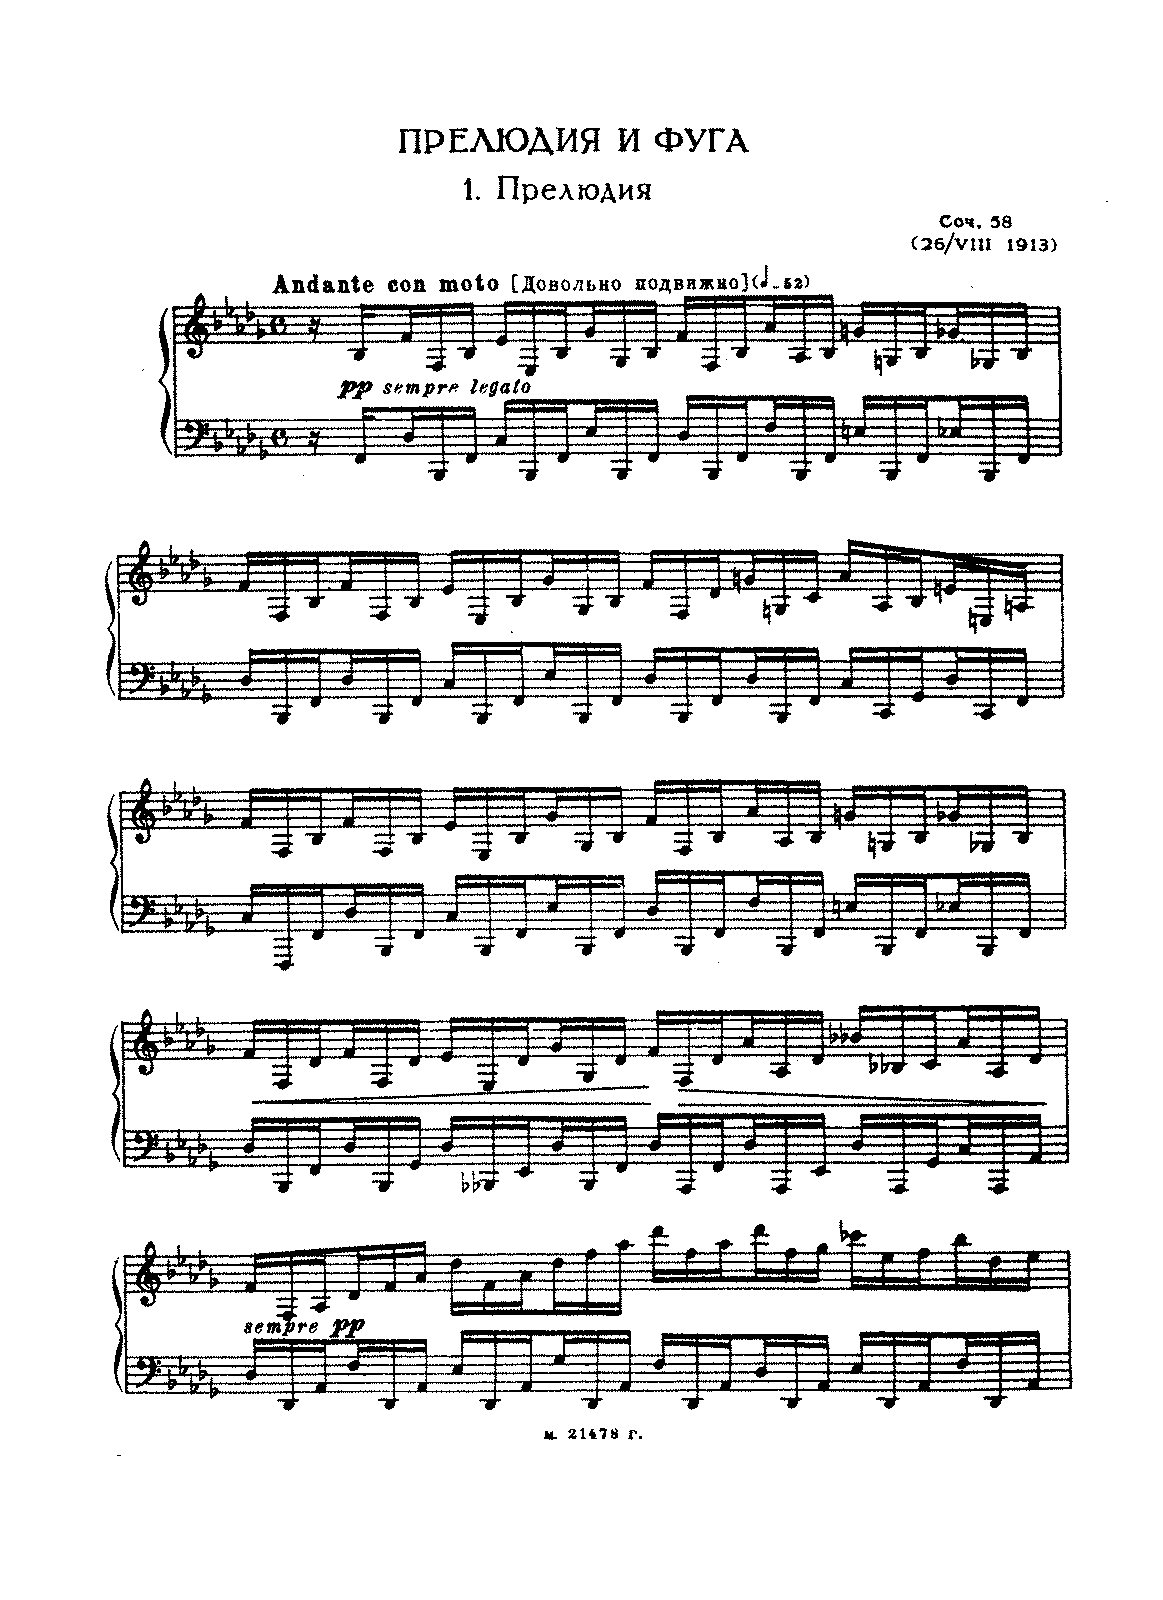 Ljapunov - Op.58 Prelude and Fugue.pdf